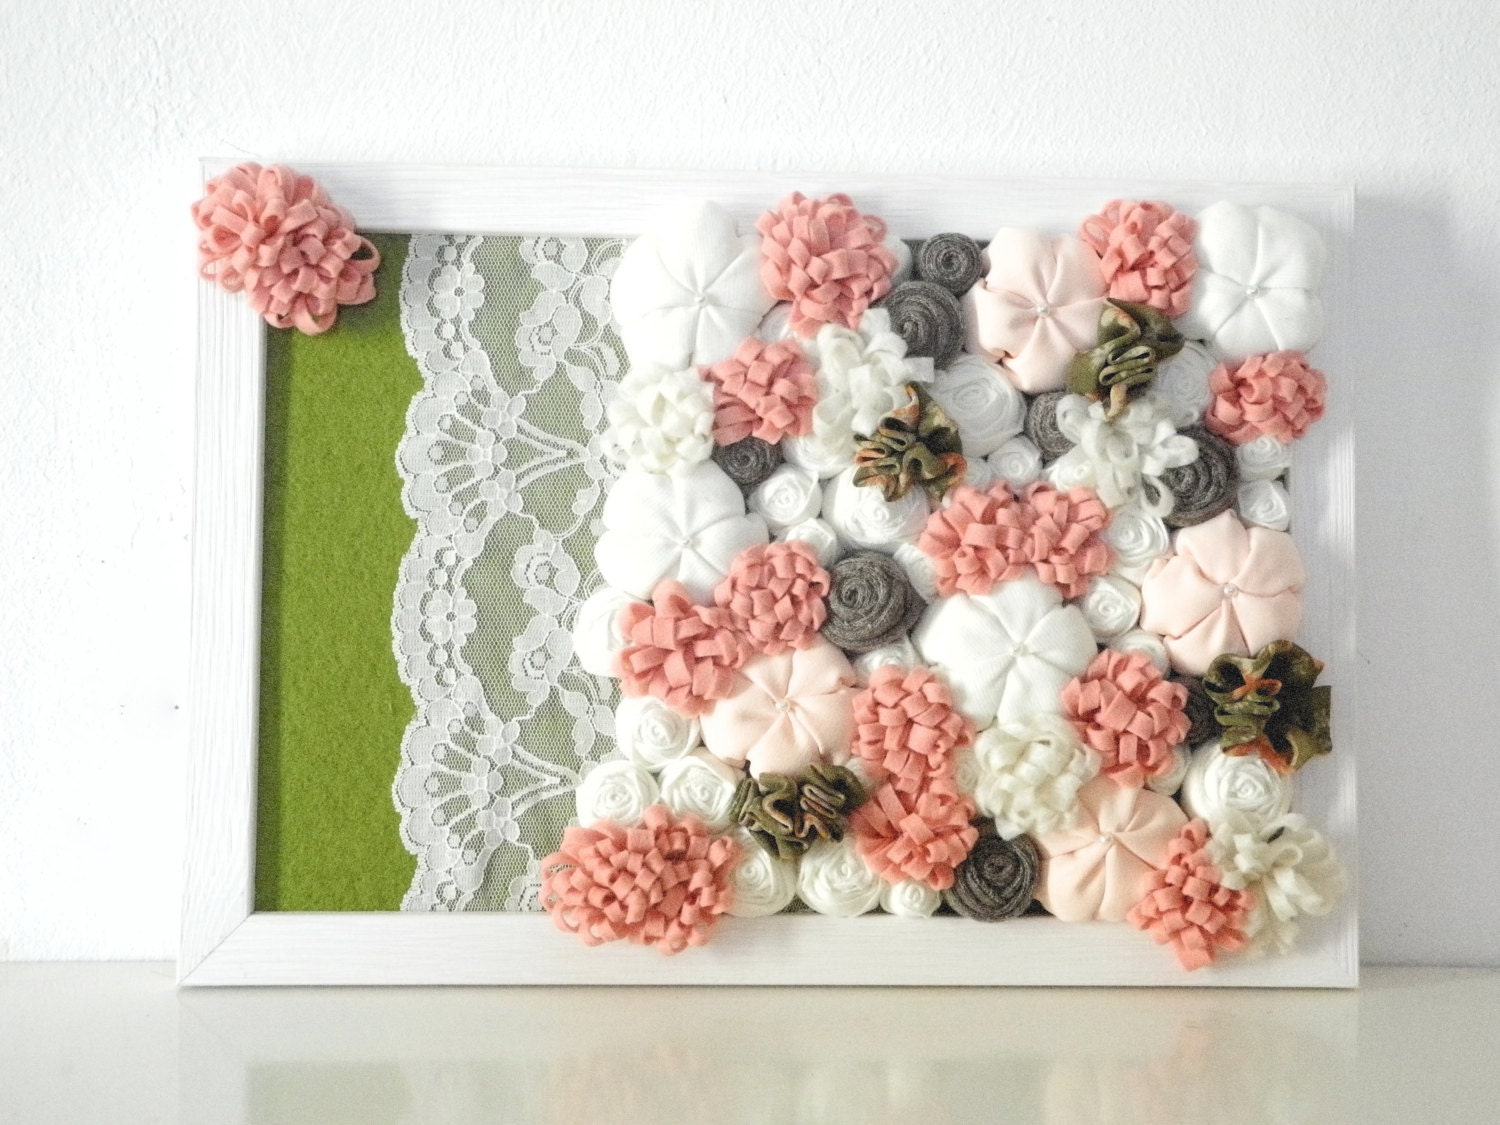 Framed Fabric Flowers Home Decor 3d Design Wall Art Pink By Mapano